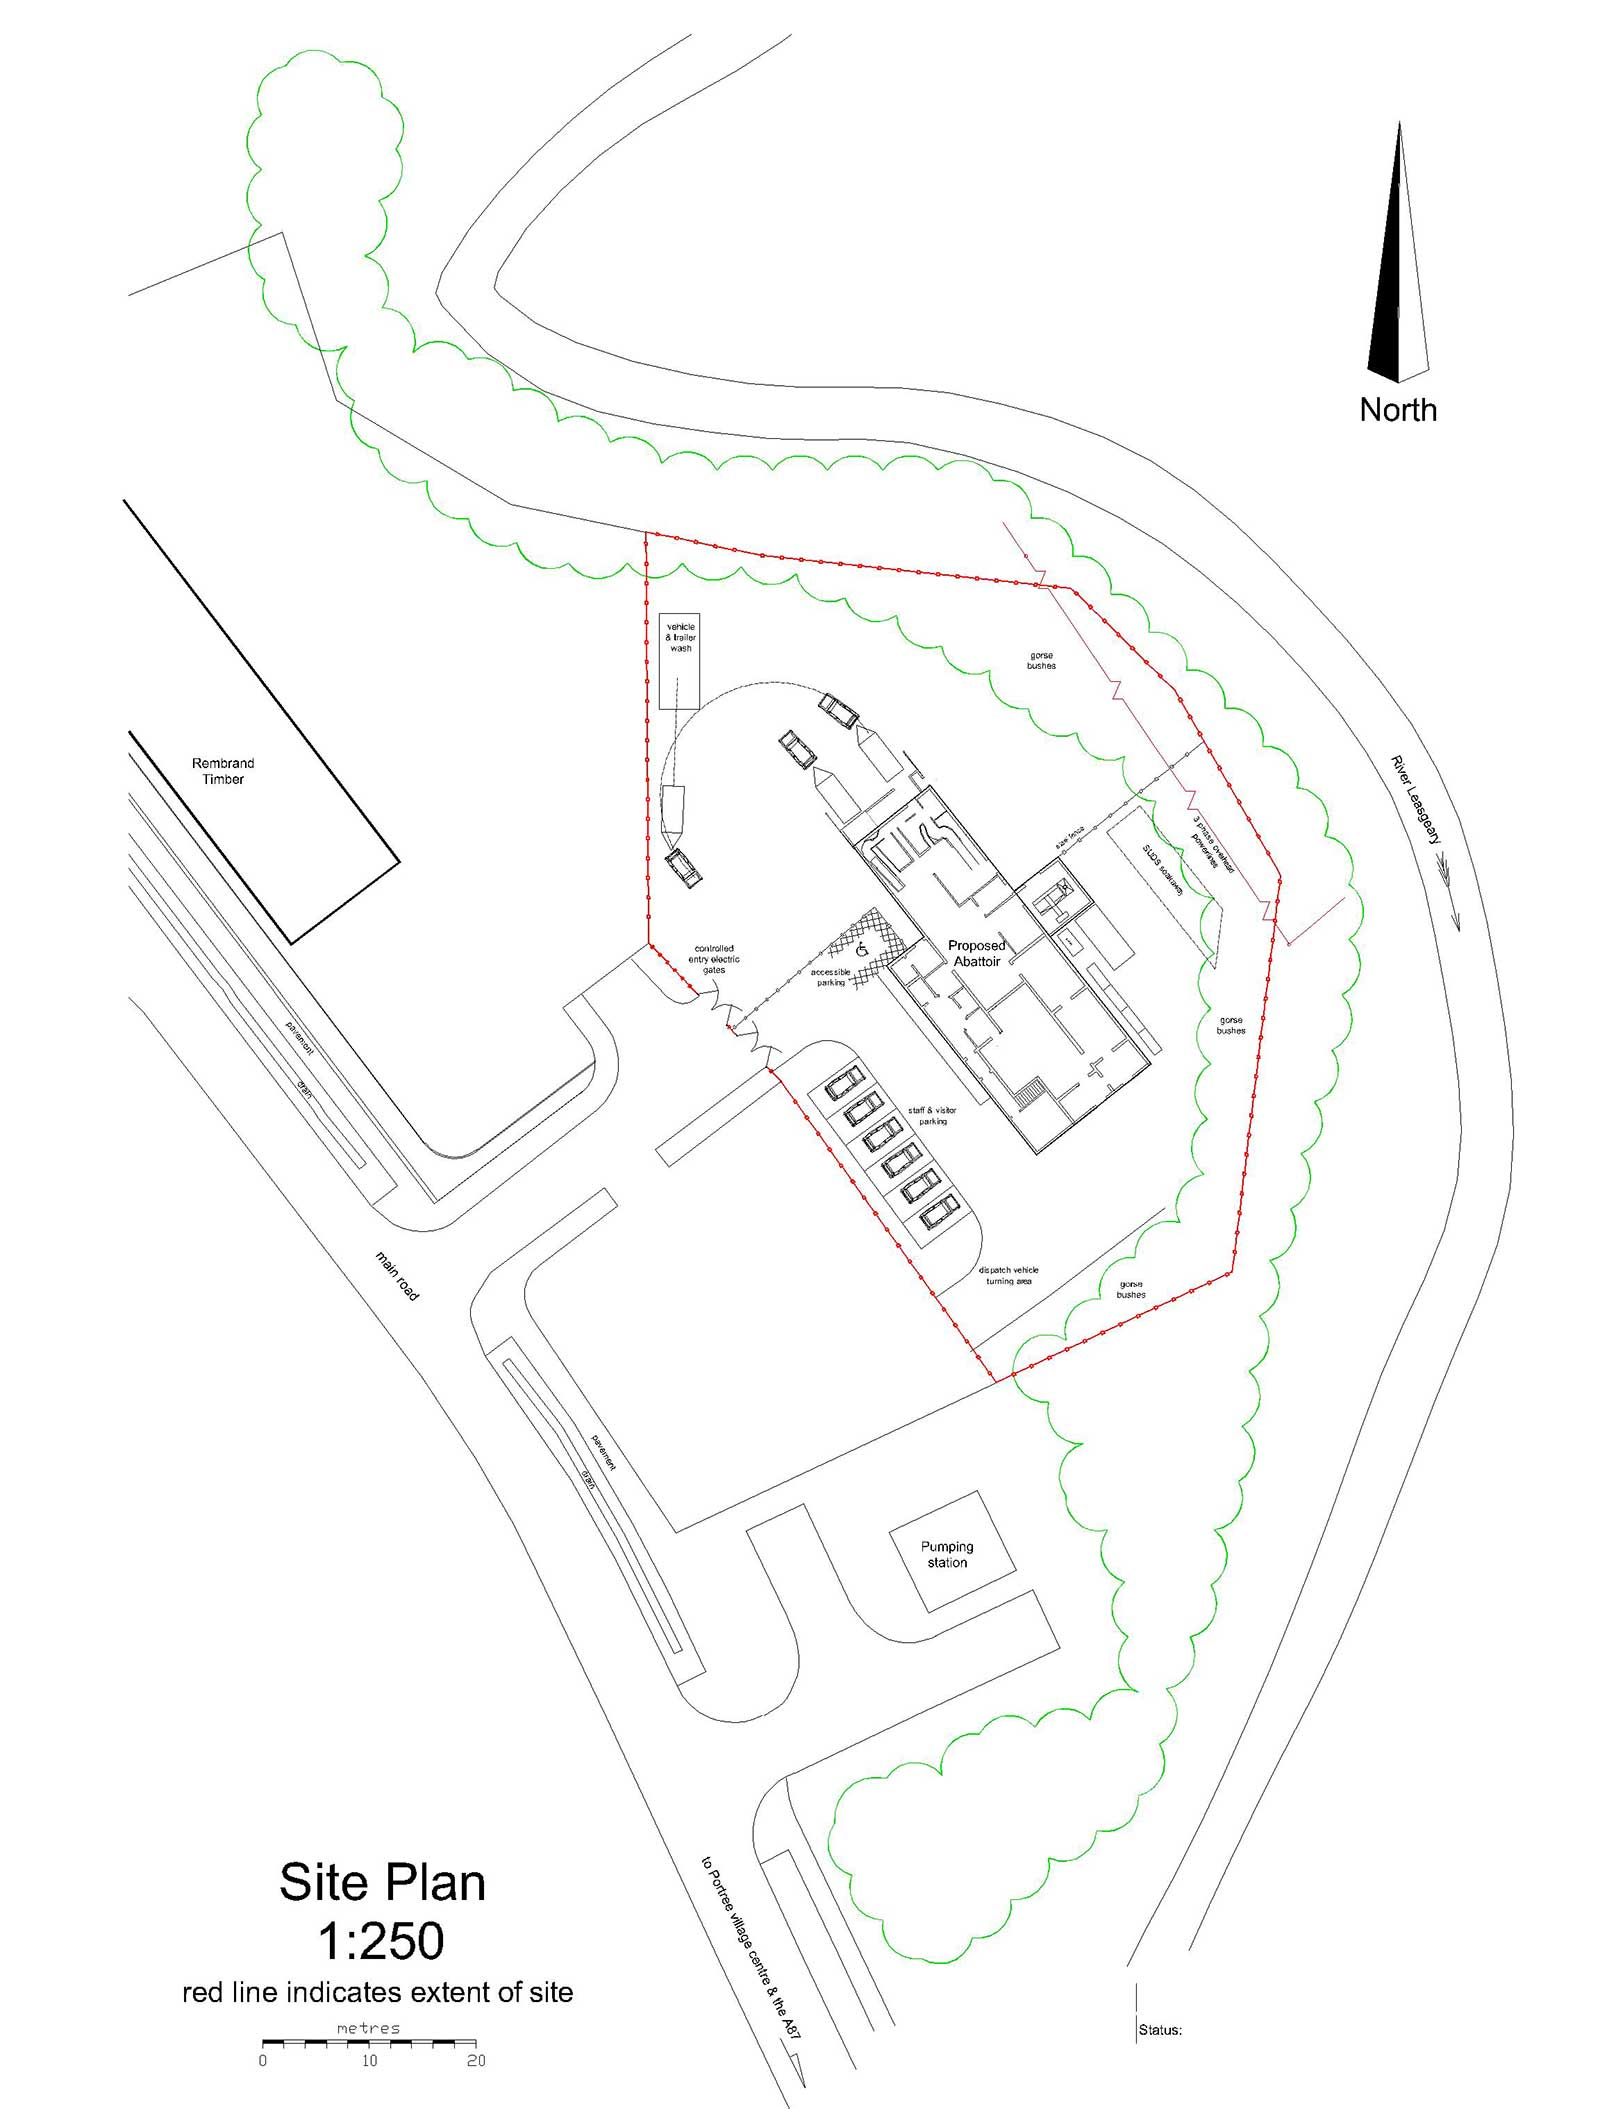 Skye and Lochalsh Abattoir Site Plan